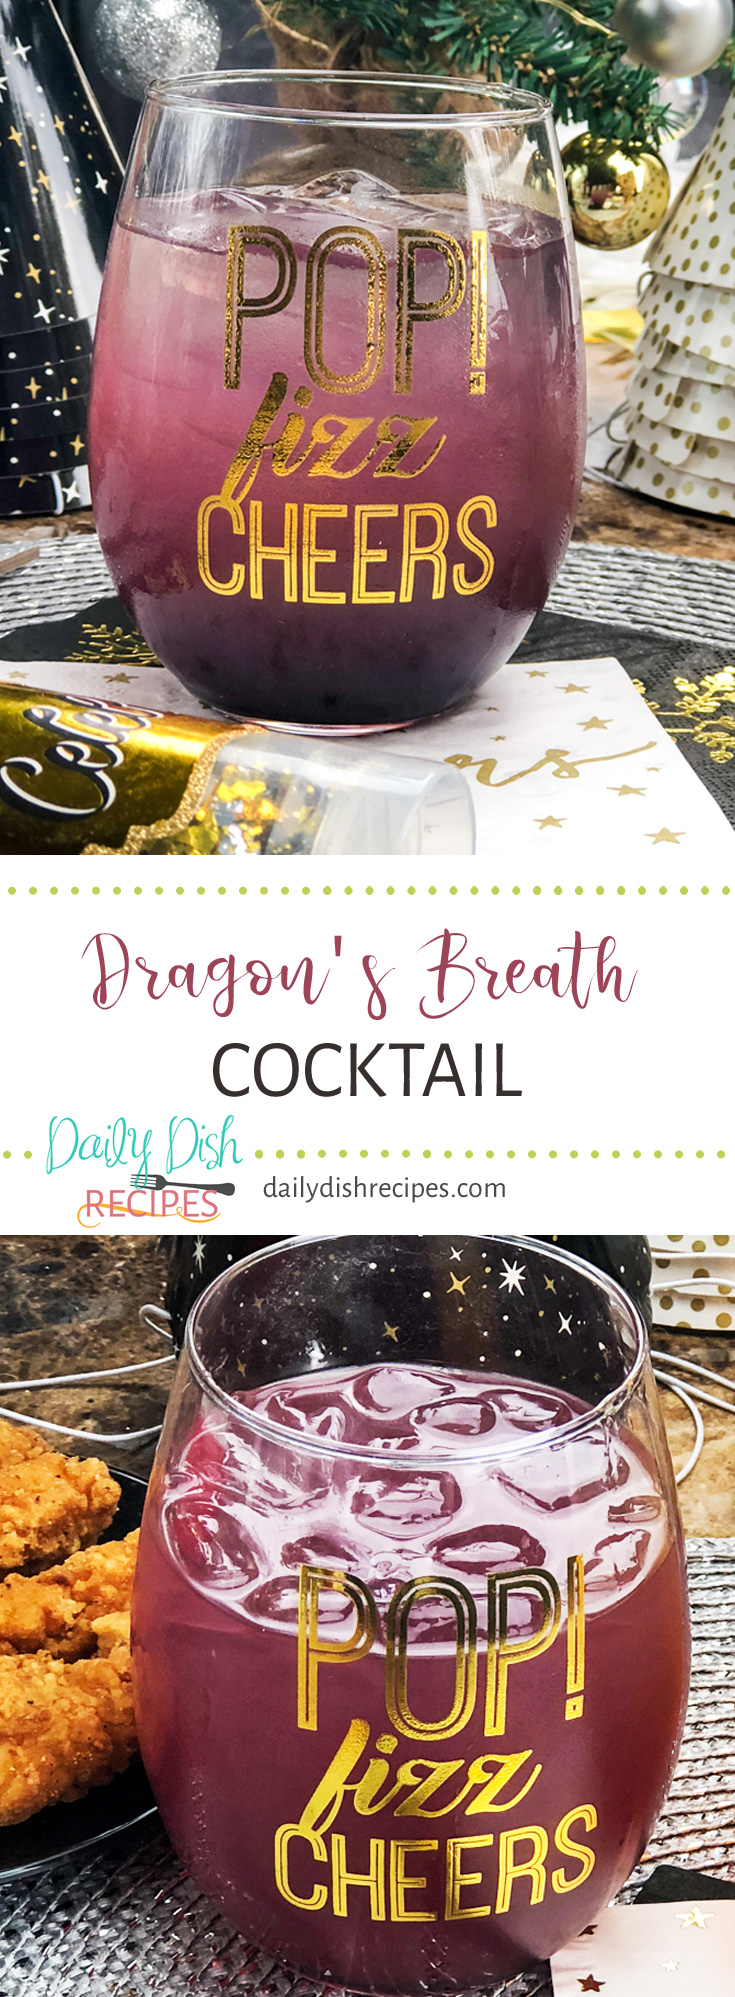 Fruity, delicious and gorgeous, this Dragon's Breath Cocktail is incredibly delicious and uses Dragonberry Rum, one of my favorites!